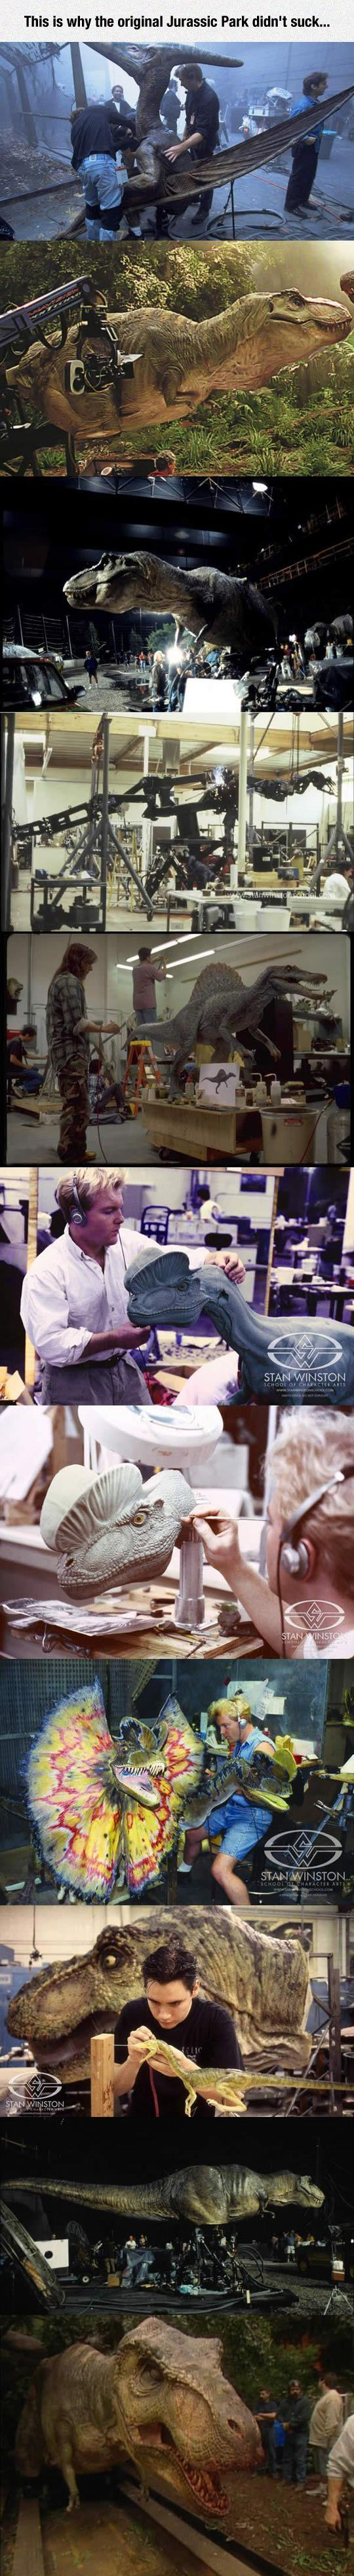 Dinosaurs Were More Real Back Then- because they actually took the time to create something by hand, not just cgi stuff